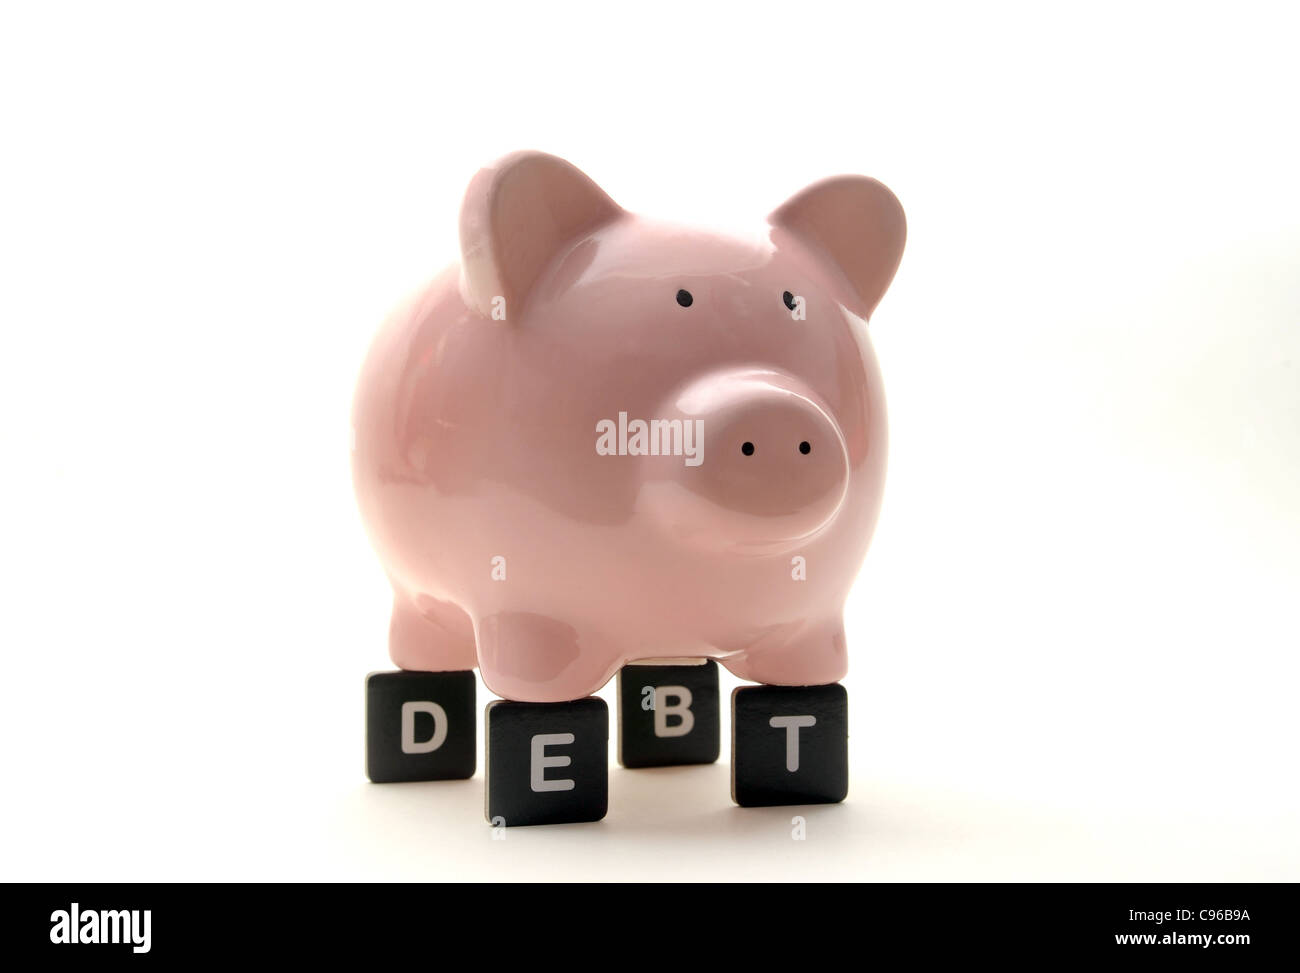 PIGGY BANK ON LETTERS SPELLING 'DEBT' RE FINANCIAL CRISIS SAVINGS ECONOMY ECONOMIC DOWNTURN MONEY  BANKS - Stock Image